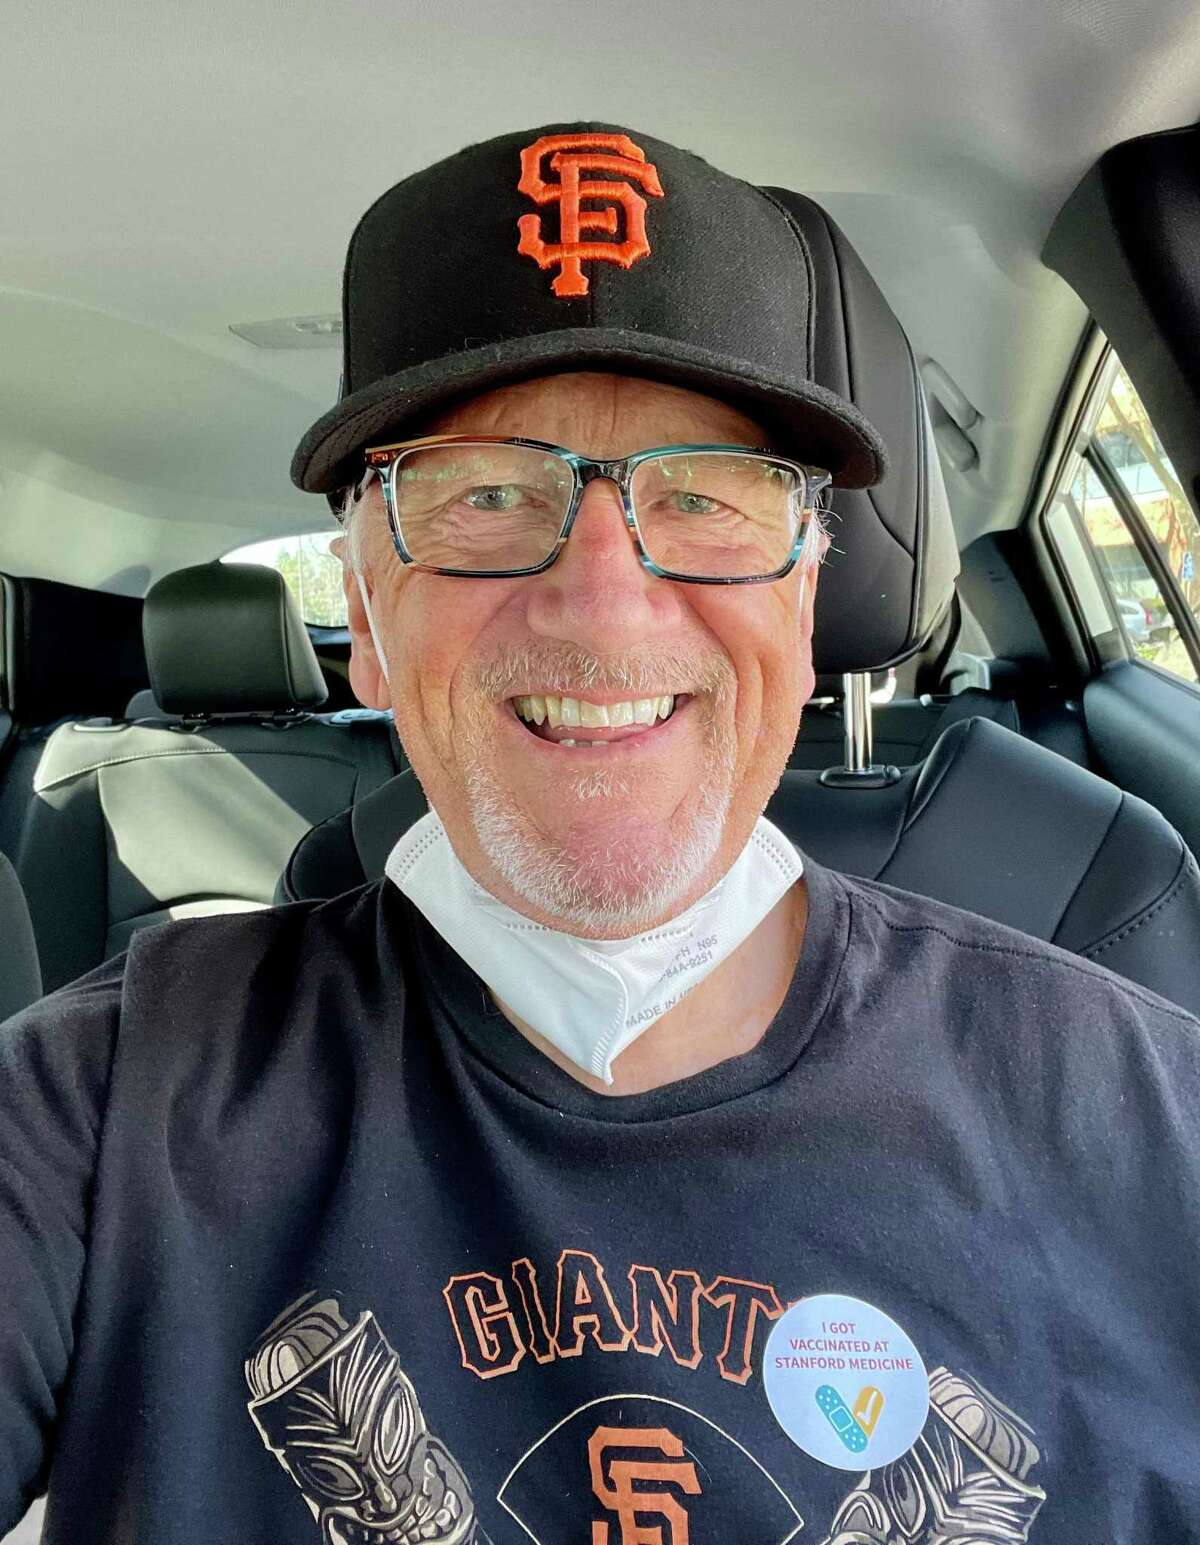 """Jon Miller said the song """"Bye Bye Baby kind of expresses all about who the Giants are."""""""